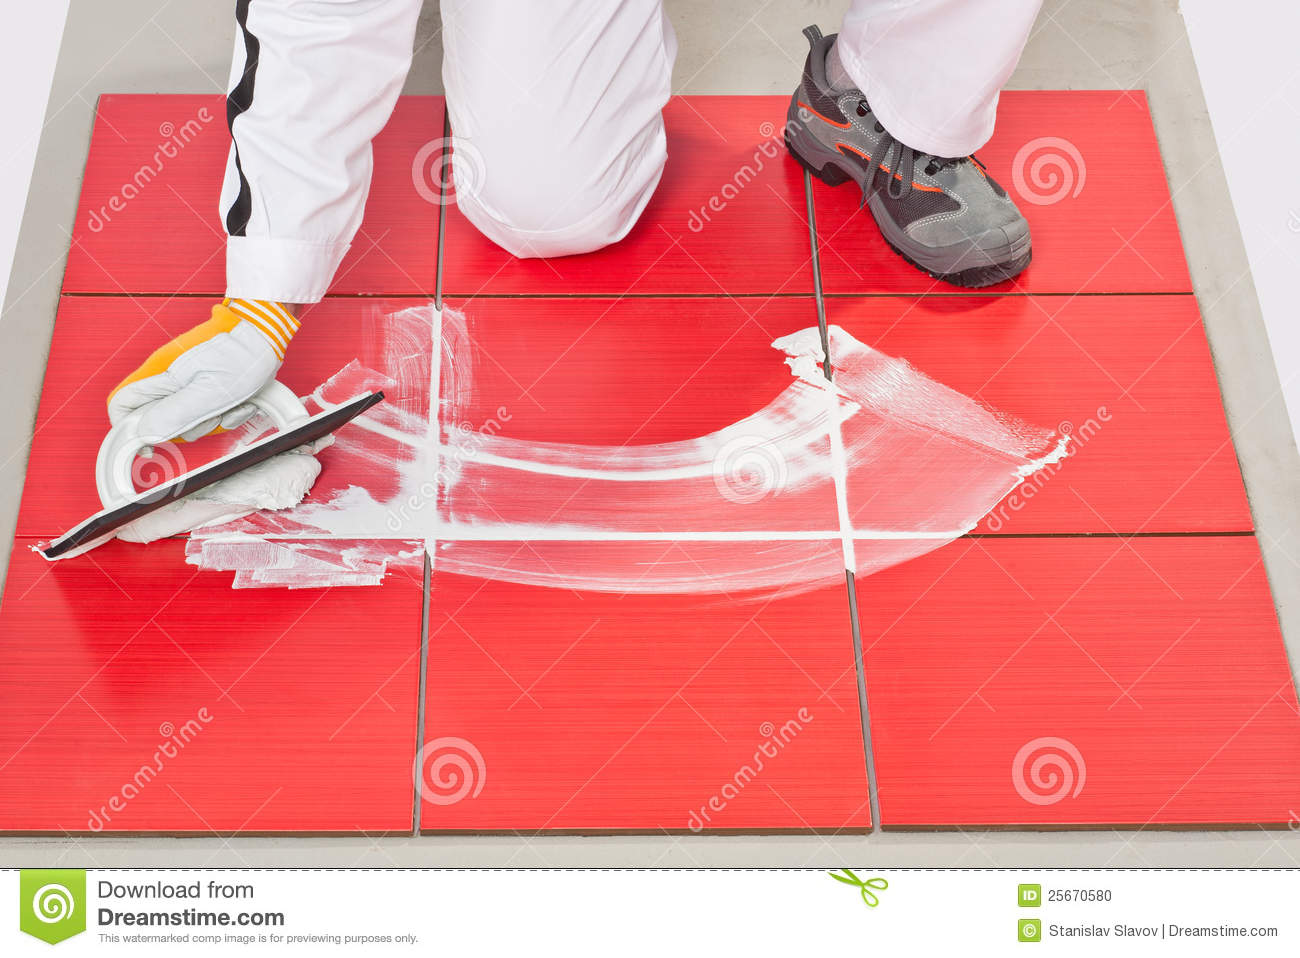 Bathroom Tile Trowel : Hand with rubber trowel applying grout tile stock photo